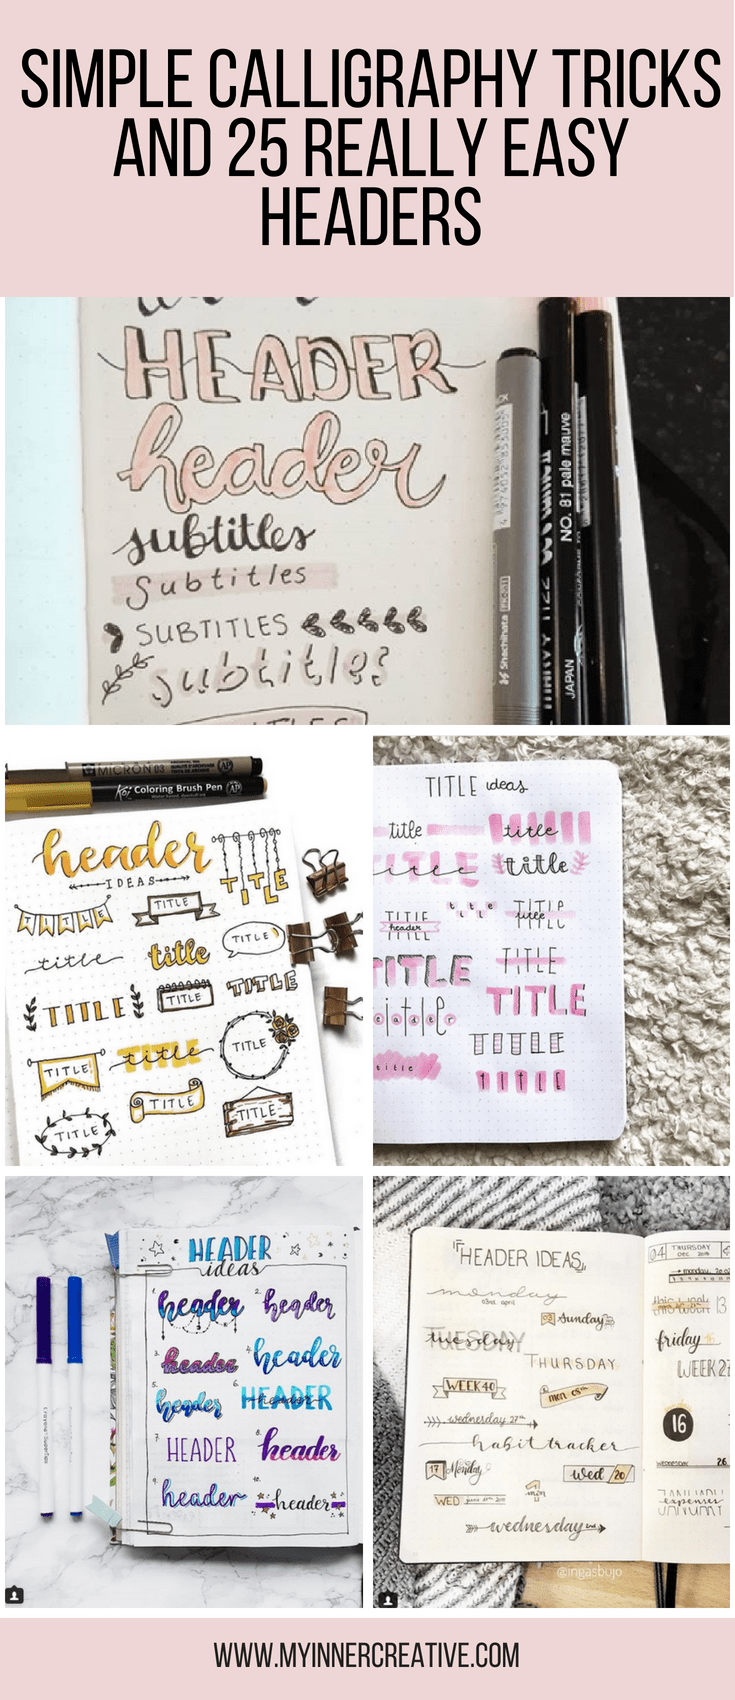 Simple Calligraphy Tricks and Simple headers